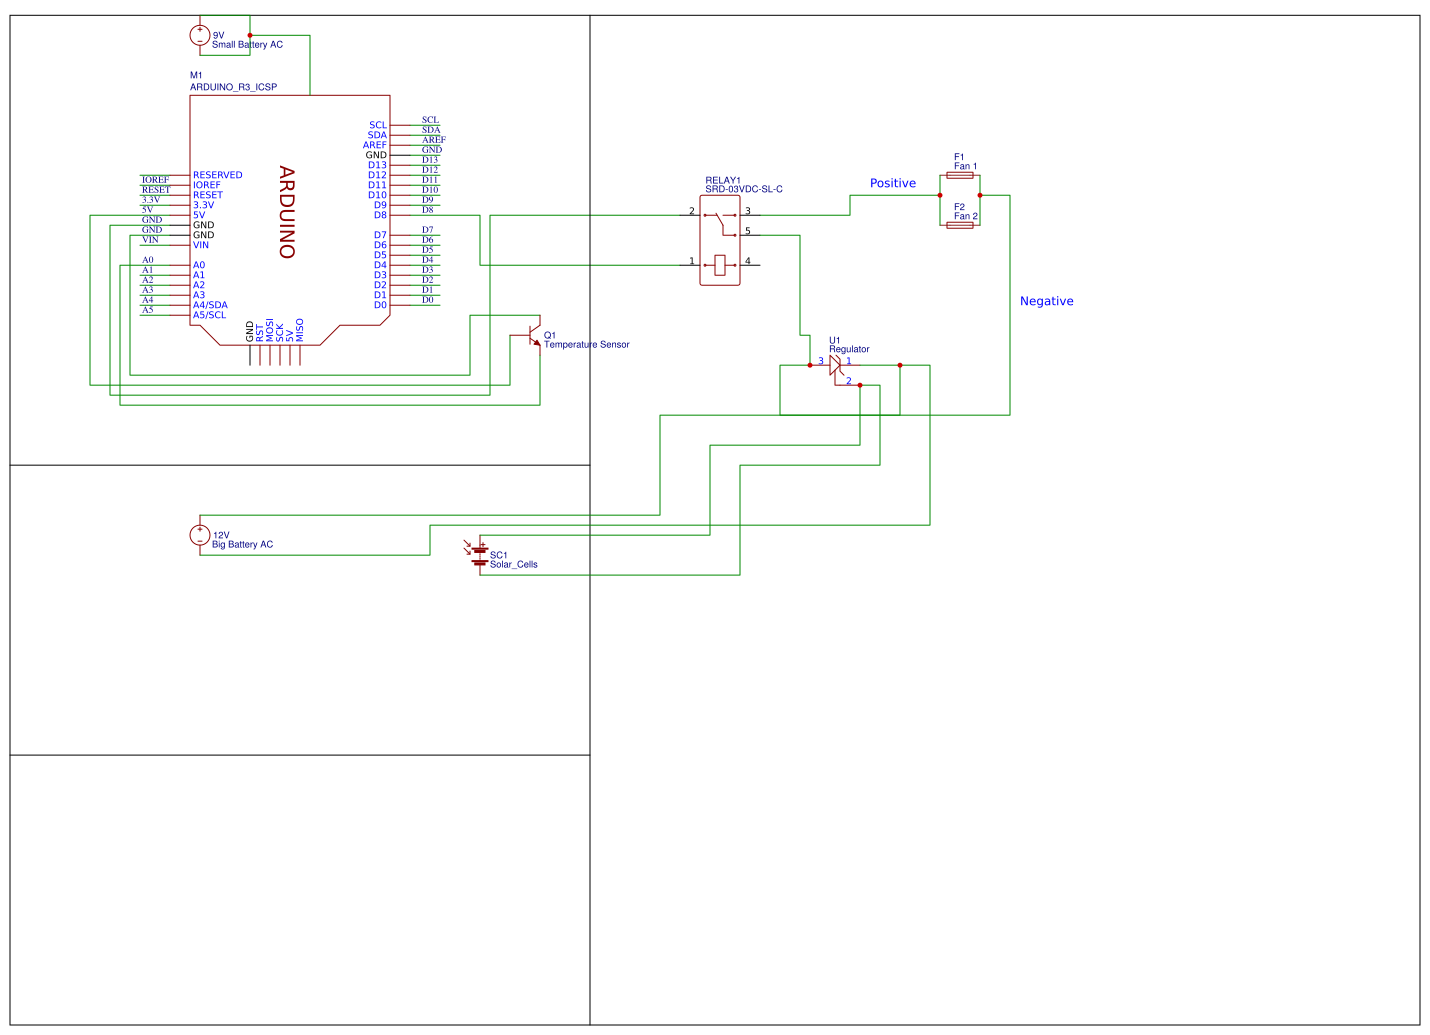 How To Download Eda Circuit Design Software Search Easyeda Tutorial On Printed Board